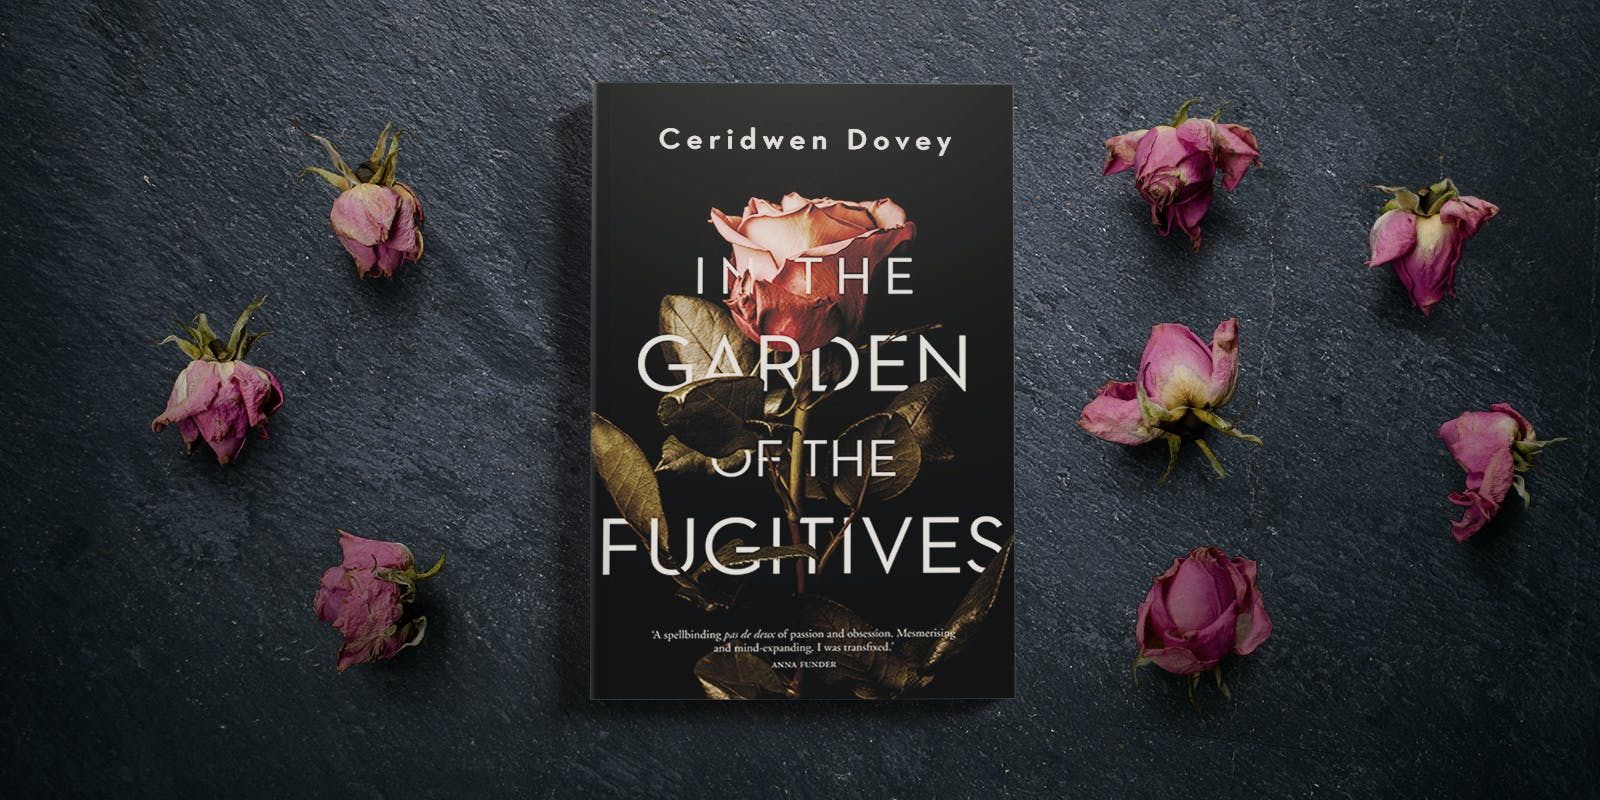 In the Garden of the Fugitives book club notes